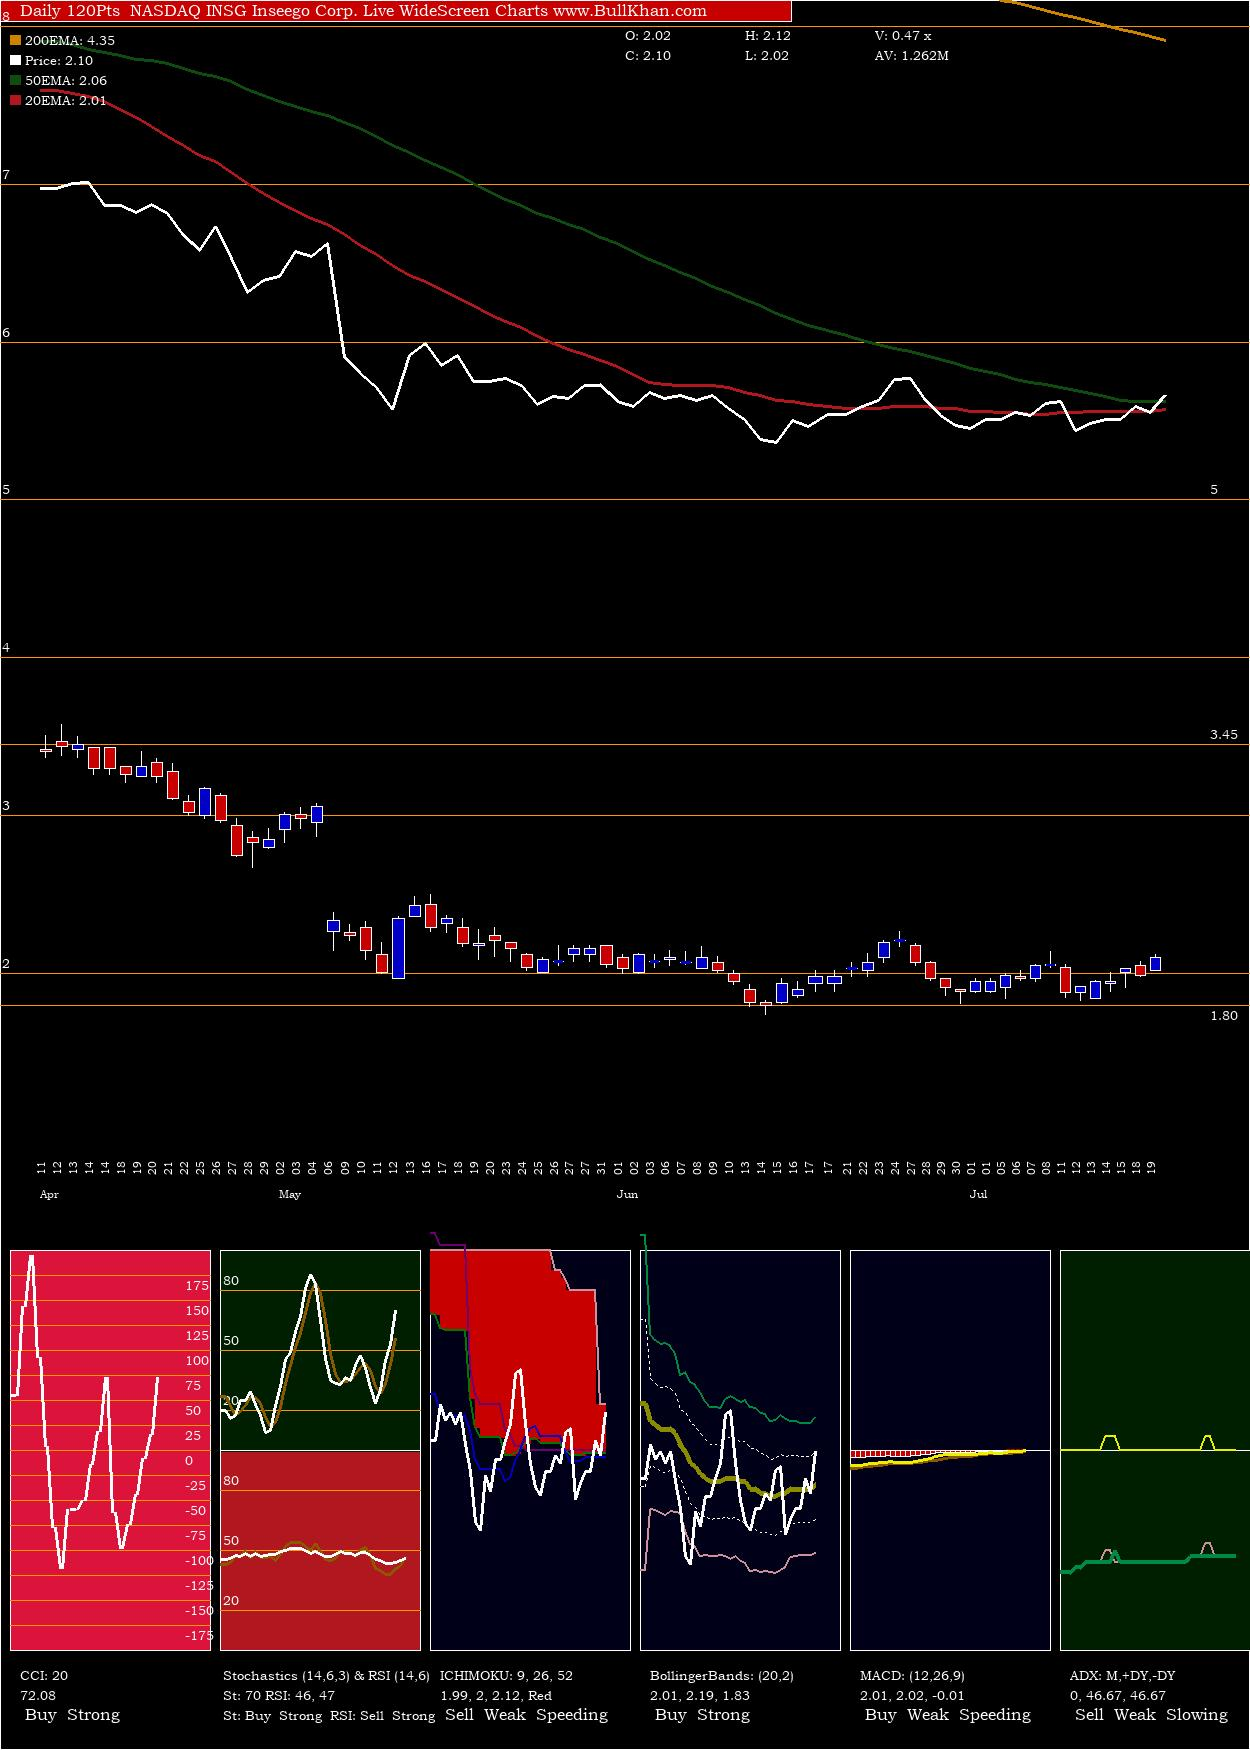 Inseego Corp charts and indicators